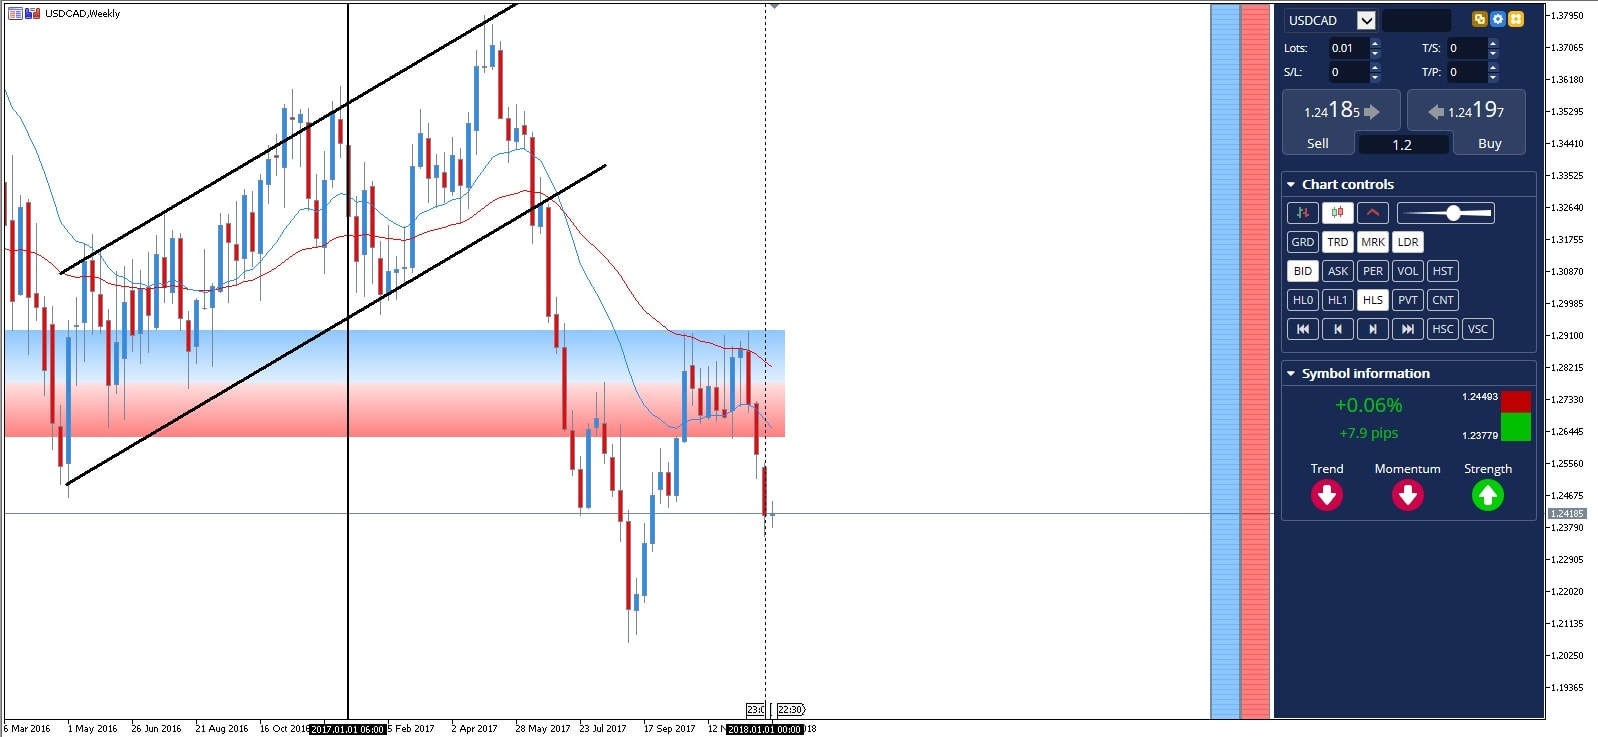 USDCAD CFD graphique hebdomadaire